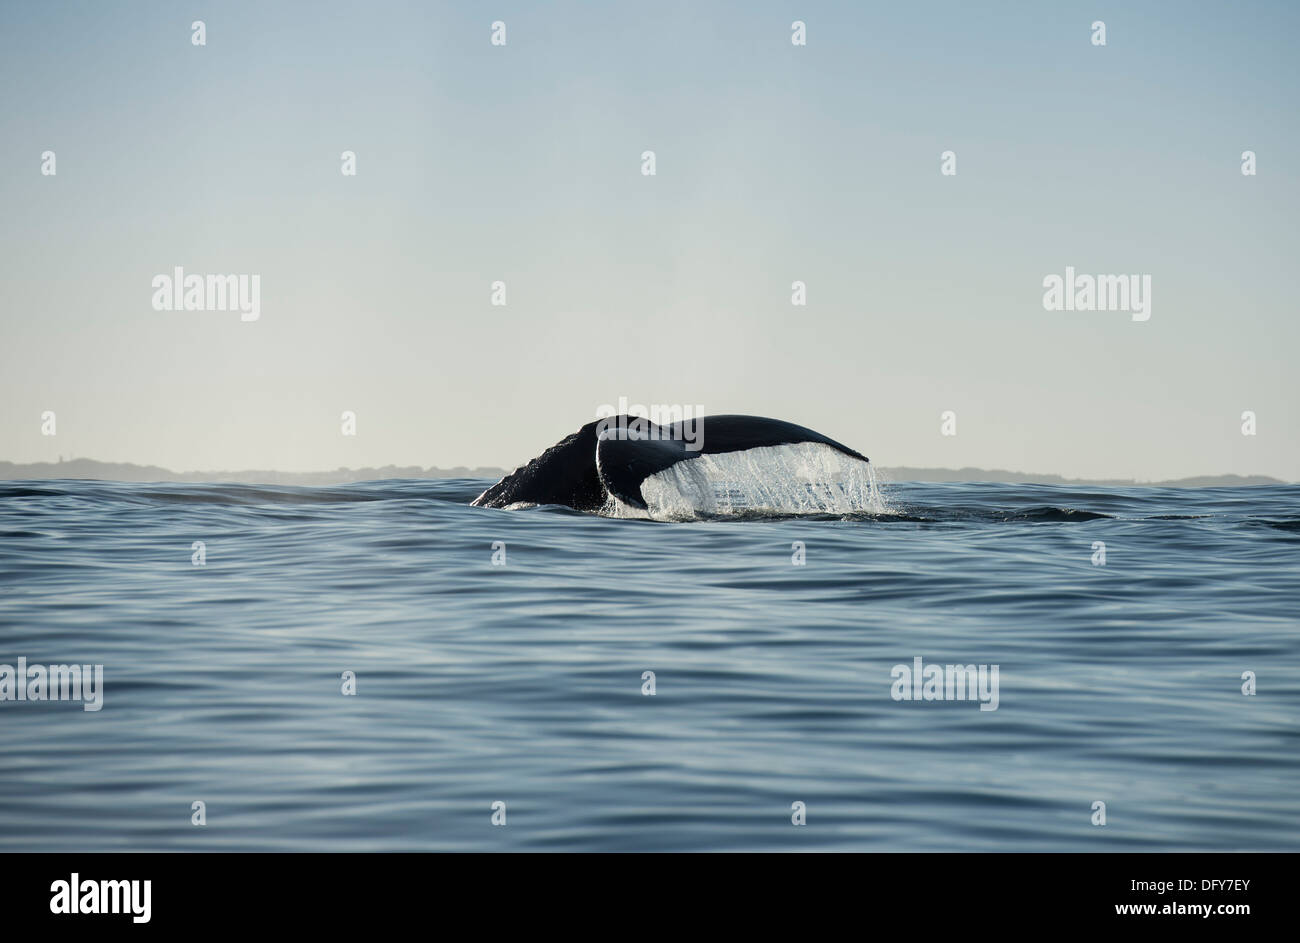 humpback whale tail, profile - Stock Image